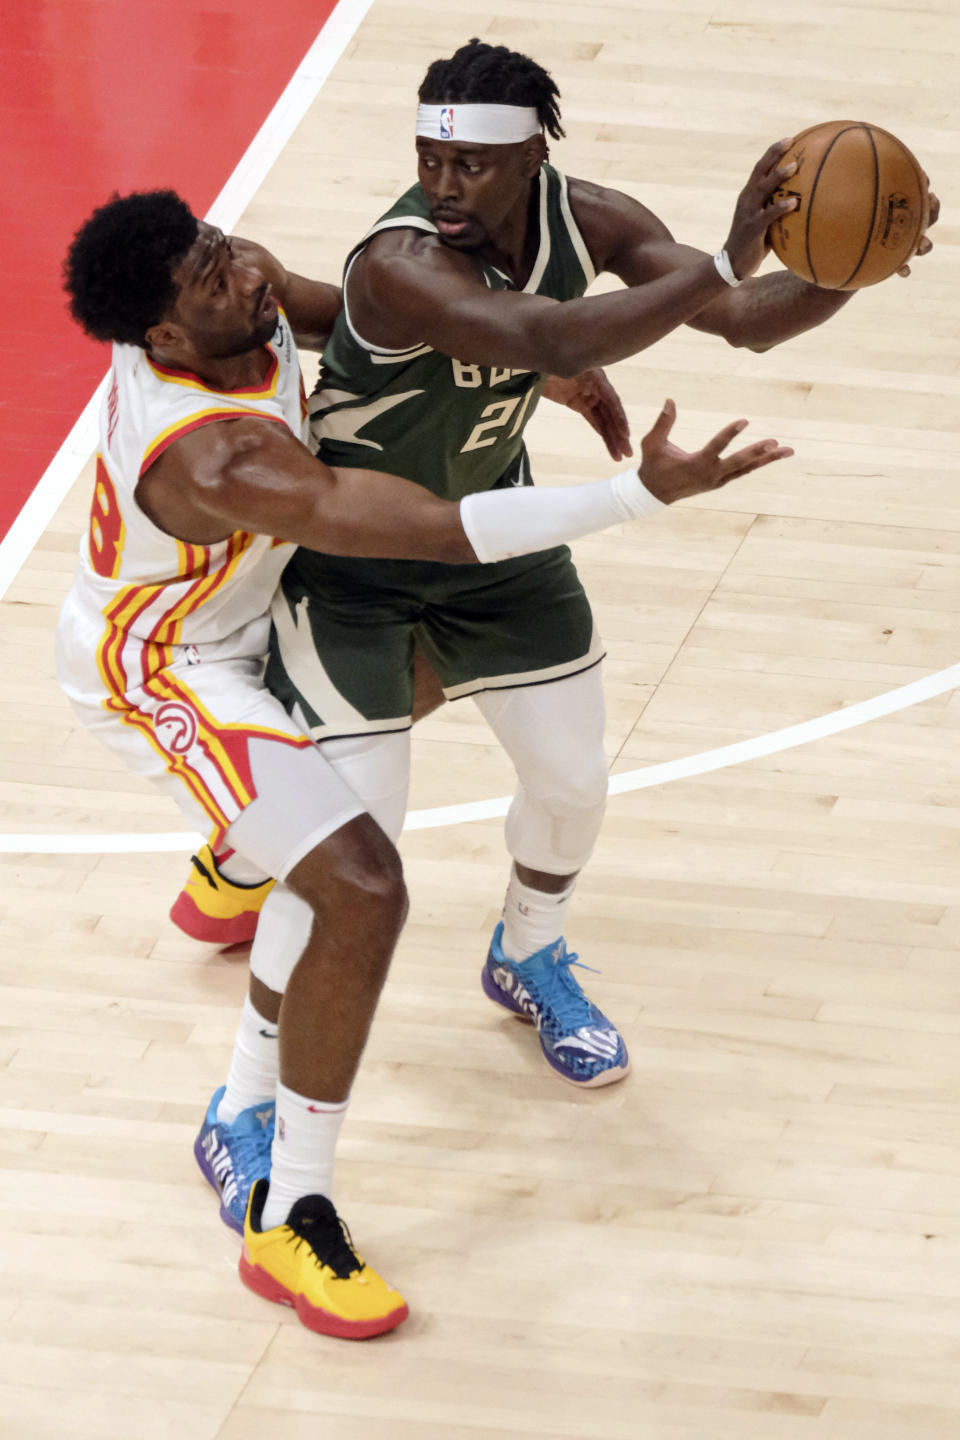 Atlanta Hawks forward Solomon Hill (18) wraps up Milwaukee Bucks guard Jrue Holiday (21) during the first half of an NBA basketball game on Sunday, April 25, 2021, in Atlanta. (AP Photo/Ben Gray)